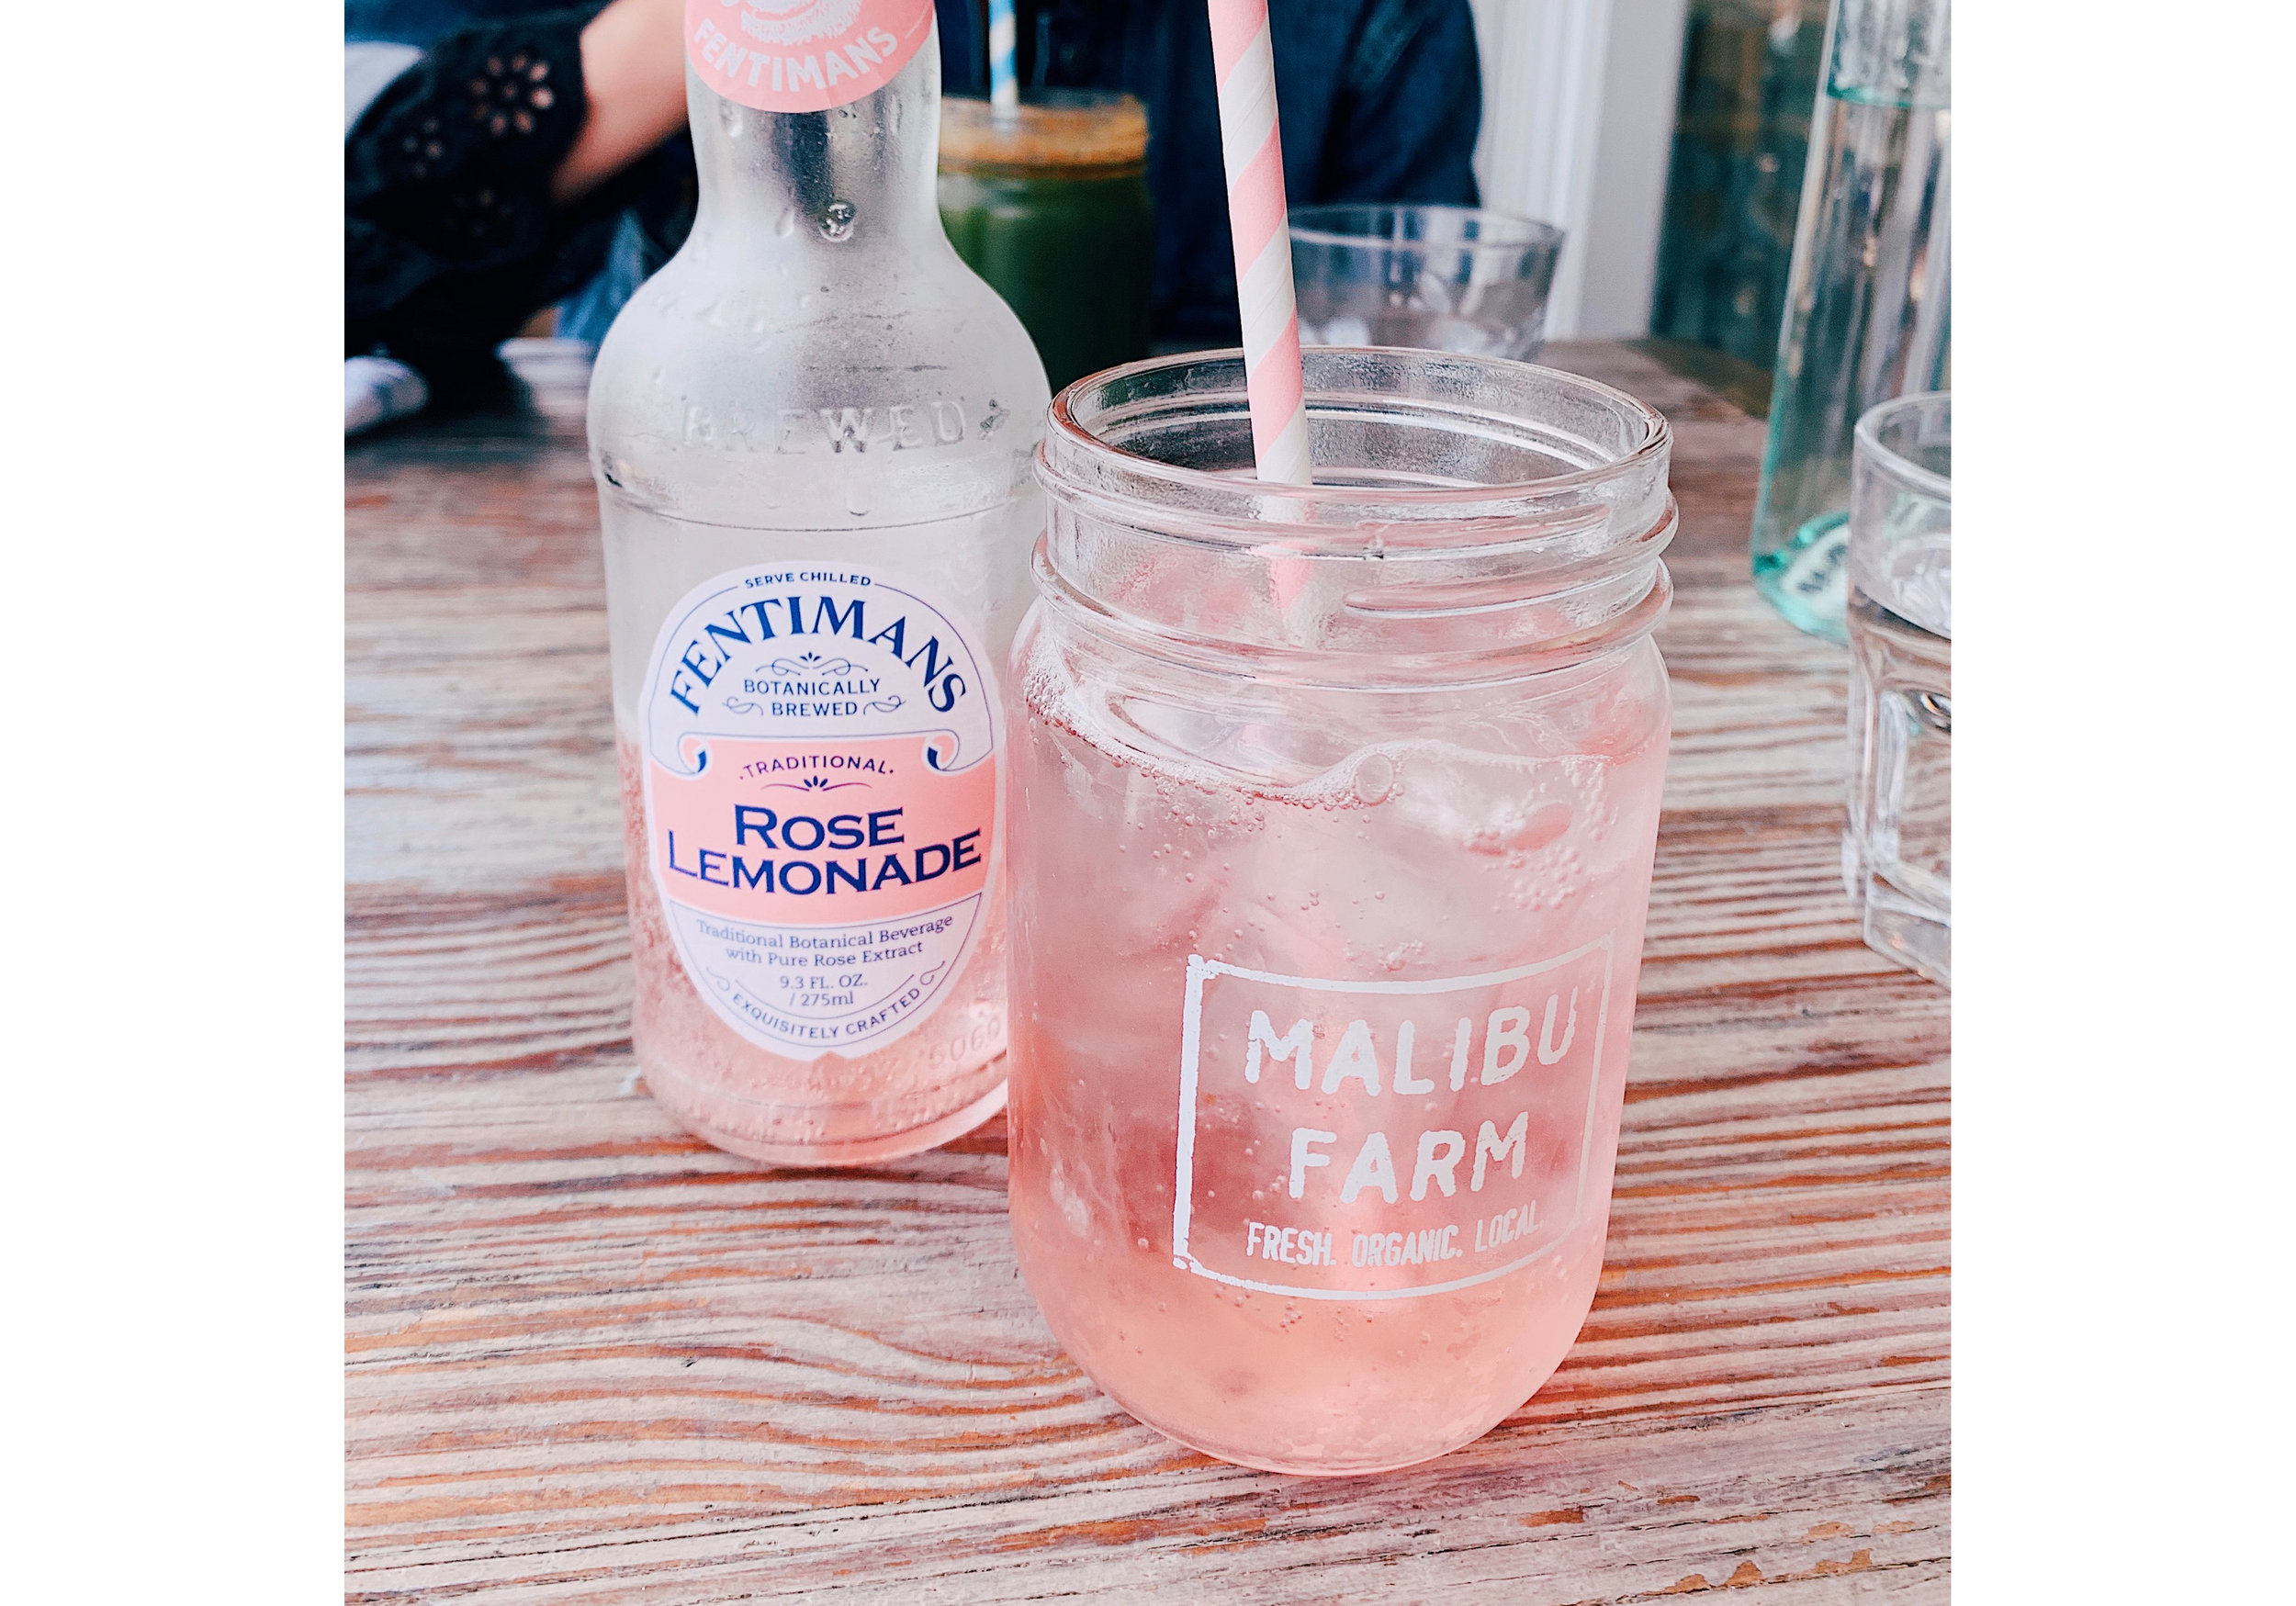 LA Malibu Farm Lemonade.jpg